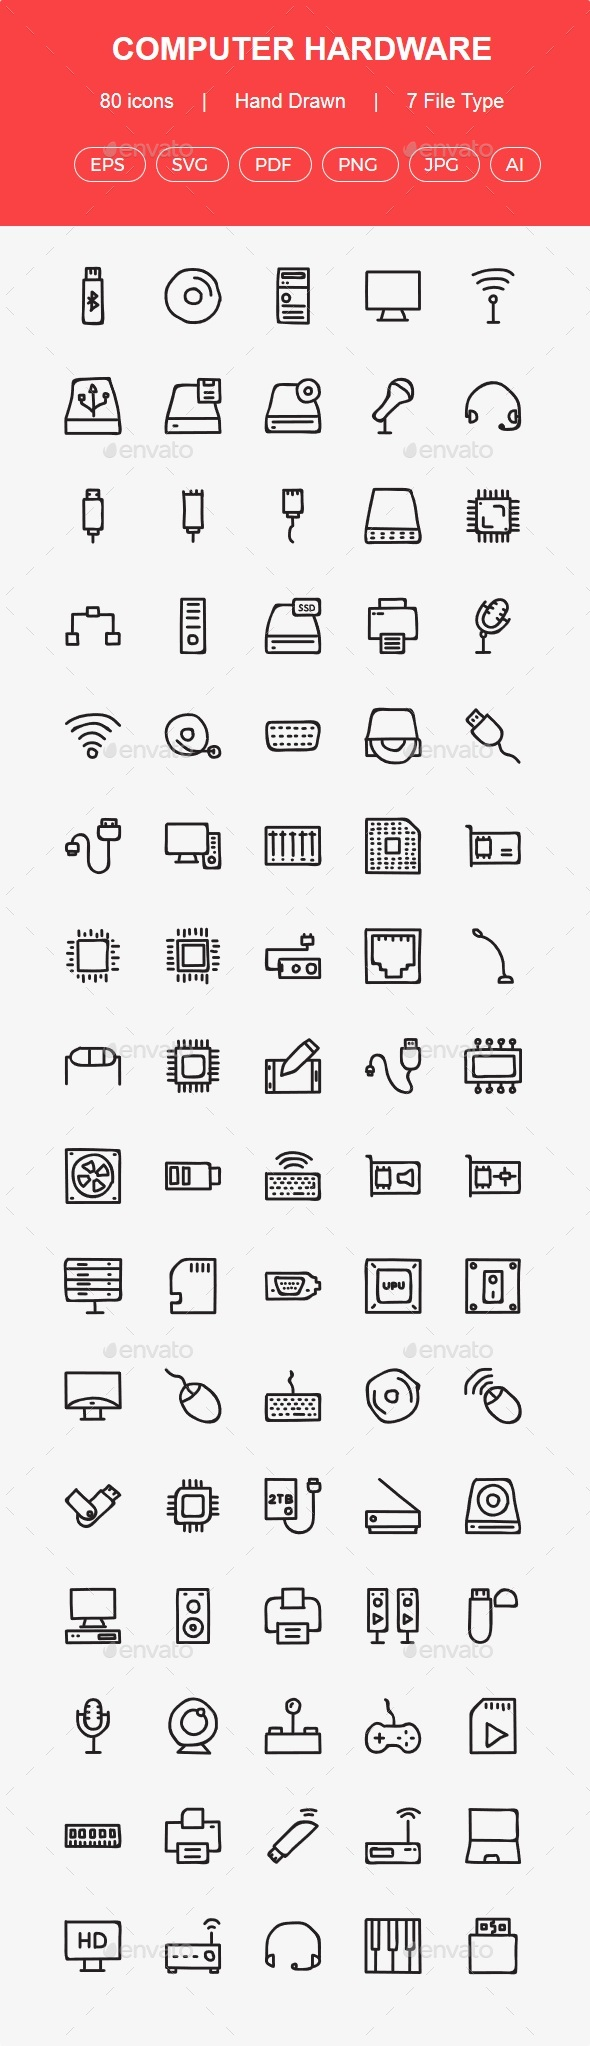 GraphicRiver 80 Computer Hardware Hand Drawn icons 20617029